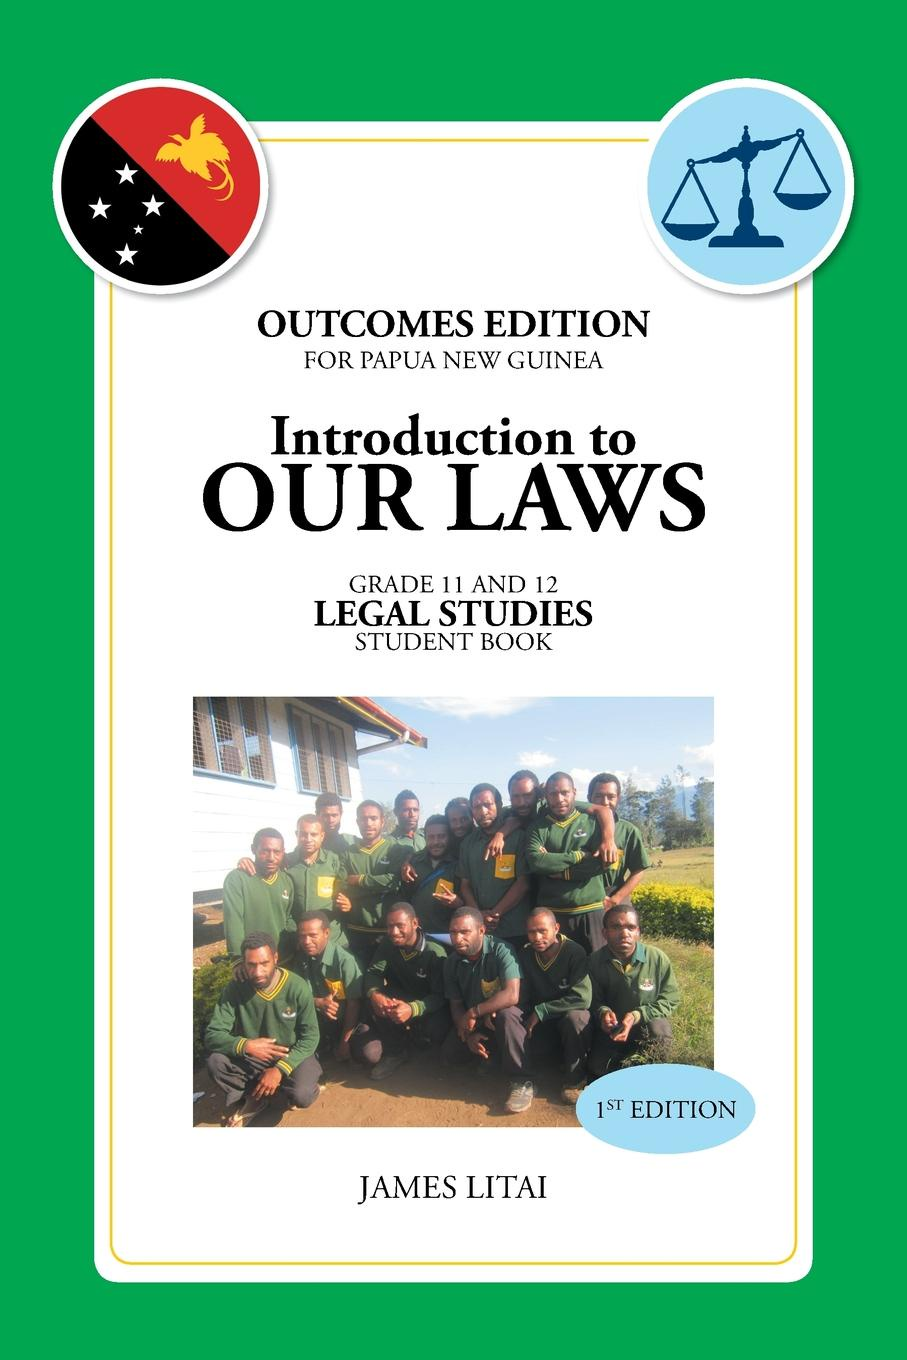 James Litai Introduction to Our Laws. OUTCOMES EDITION FOR PAPUA NEW GUINEA GR.11&12 LEGAL STUDIES STUDENT BOOK outcomes intermediate student s book